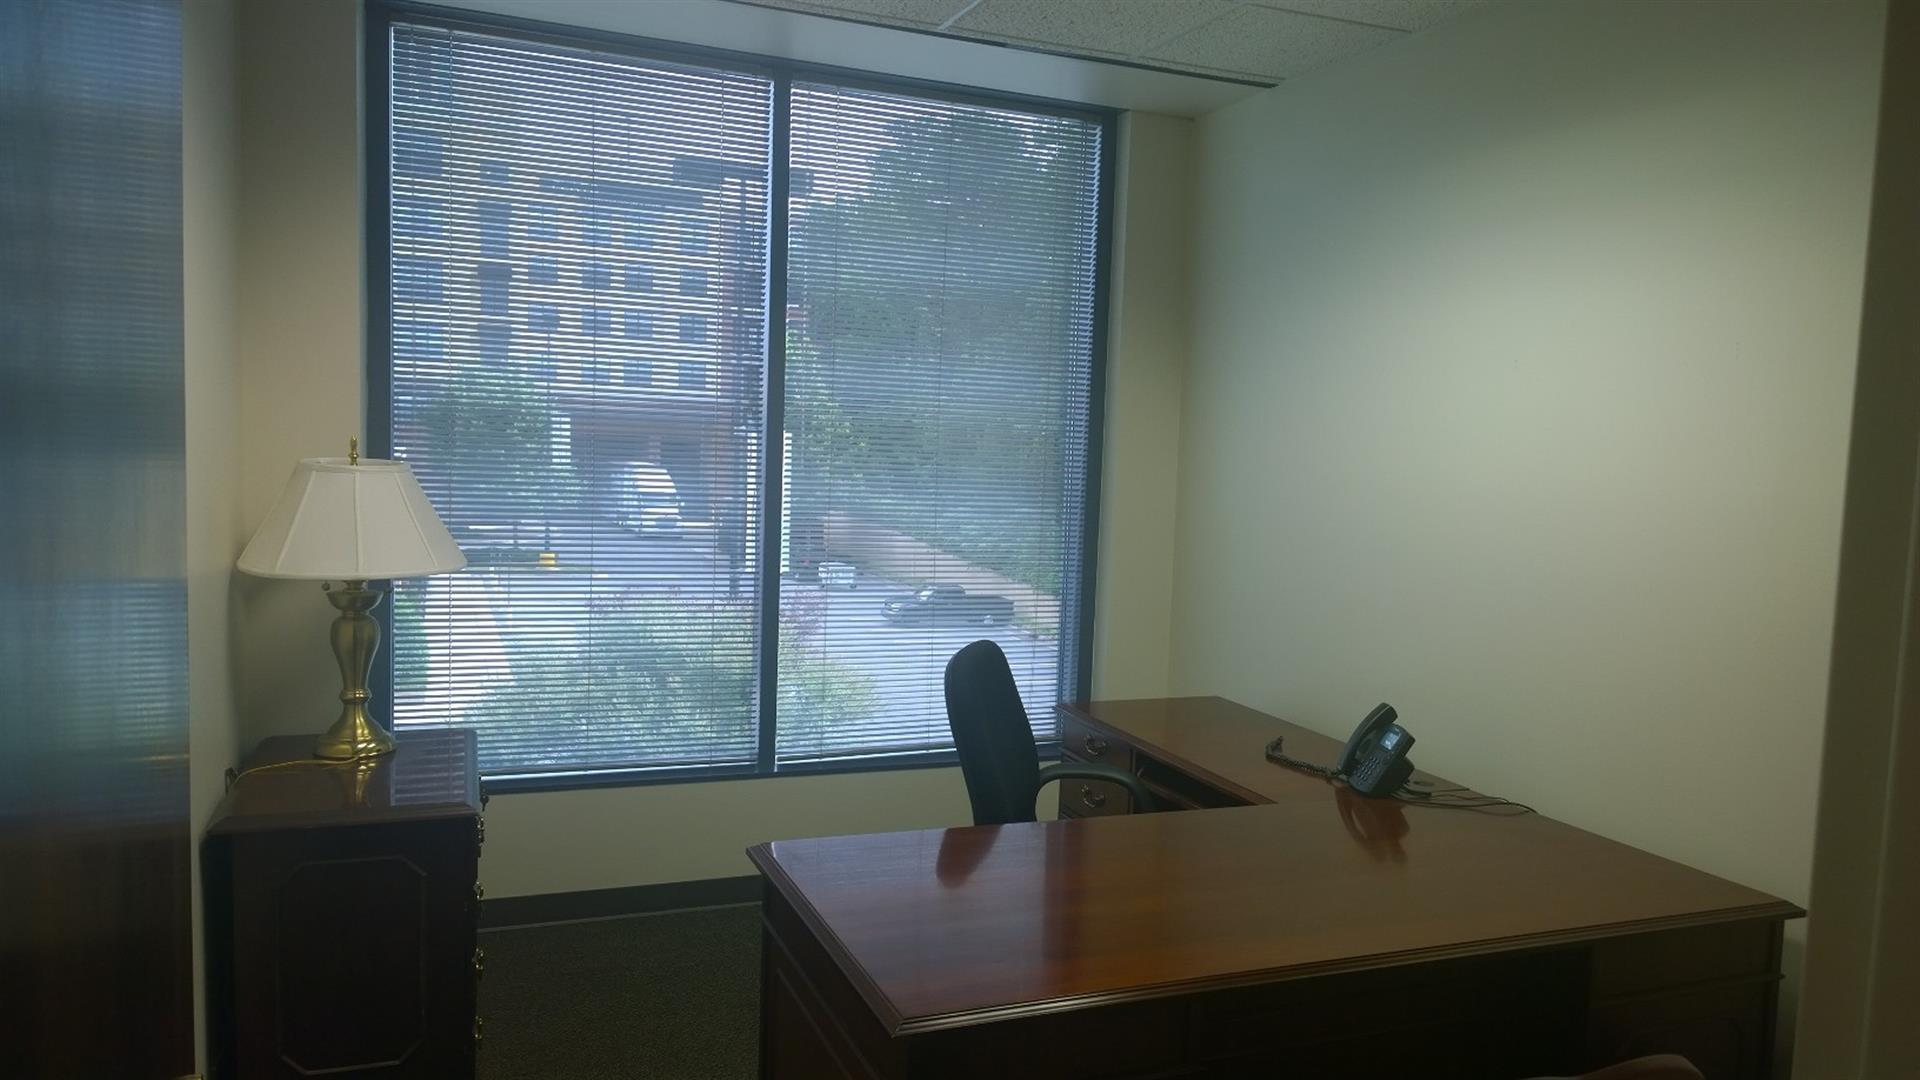 American Fueling Systems - Private Office